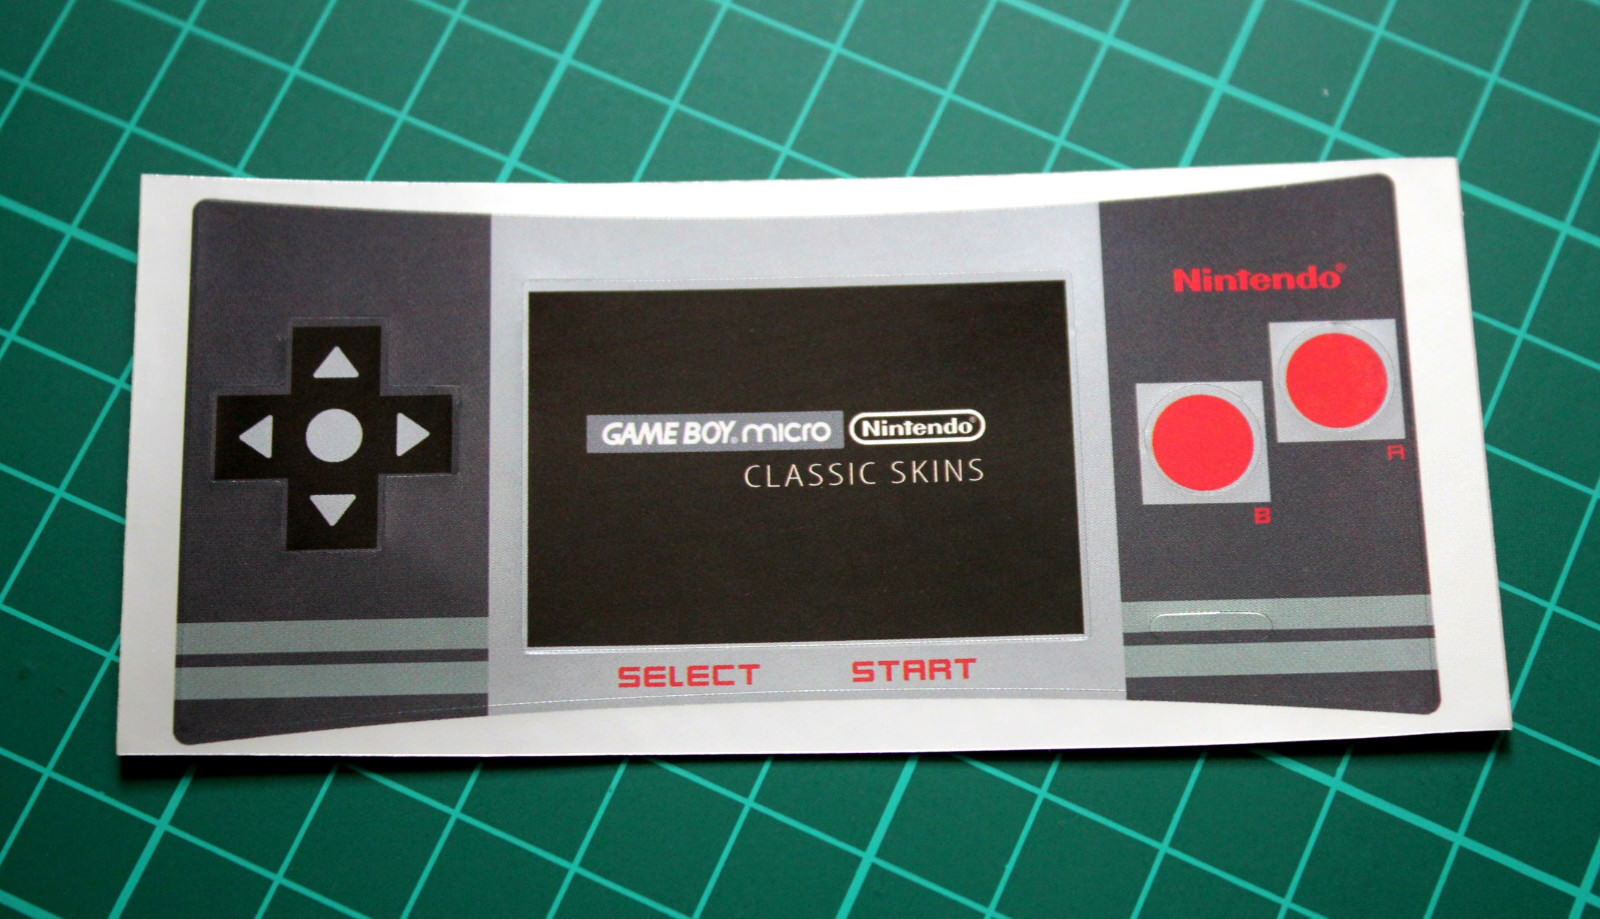 Game Boy Micro Faceplate Sticker Skin (NES Design)